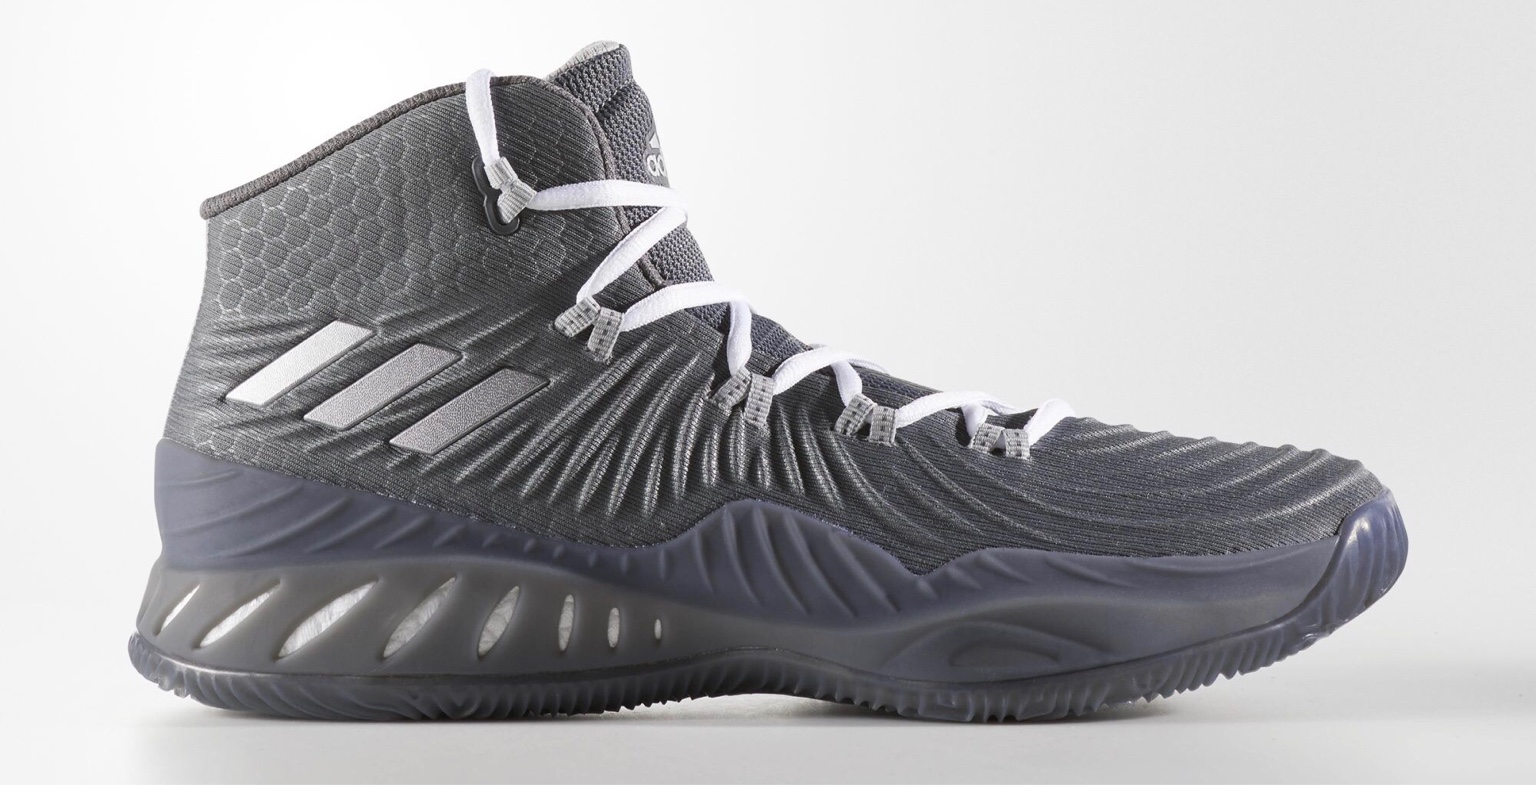 f91e7ae7842793 We got a ETA for the Hyperdunk 2017 High   Crazy Explosive 2017  Need them  to finish making these Team Colorways So I can start this Custom Roster